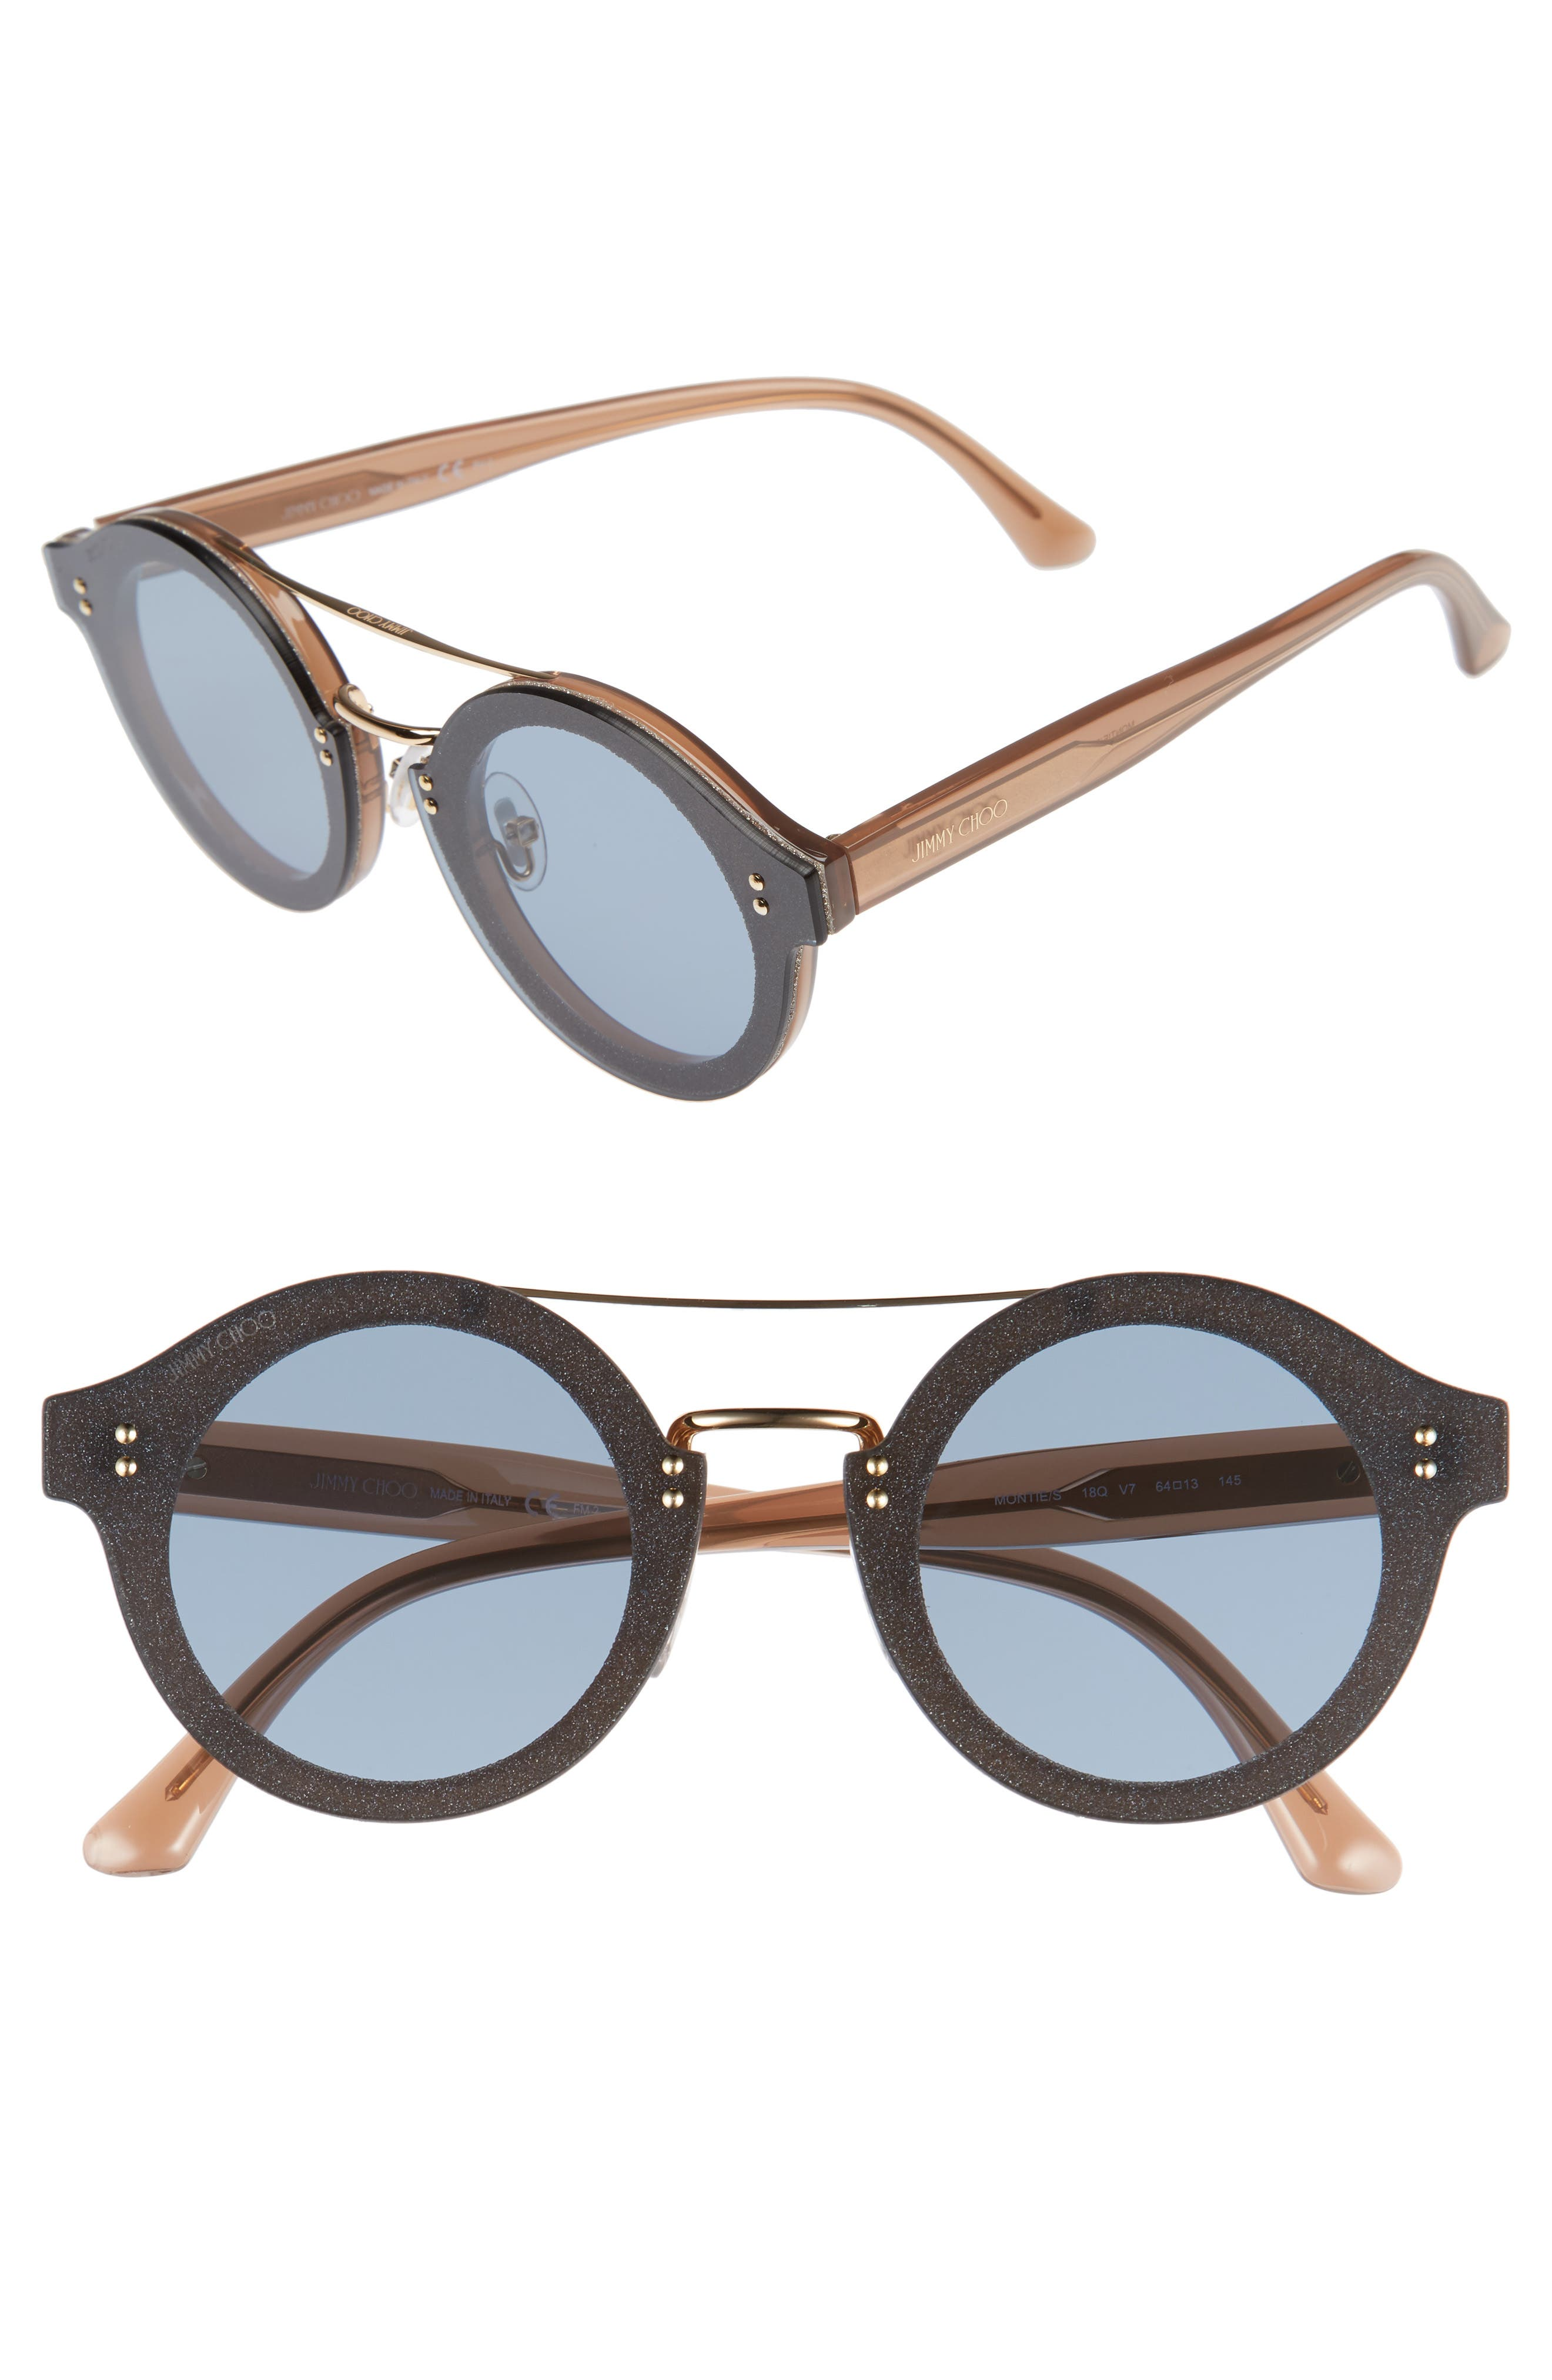 Monties 64mm Round Sunglasses,                             Main thumbnail 1, color,                             Nude/ Glitter/ Gold